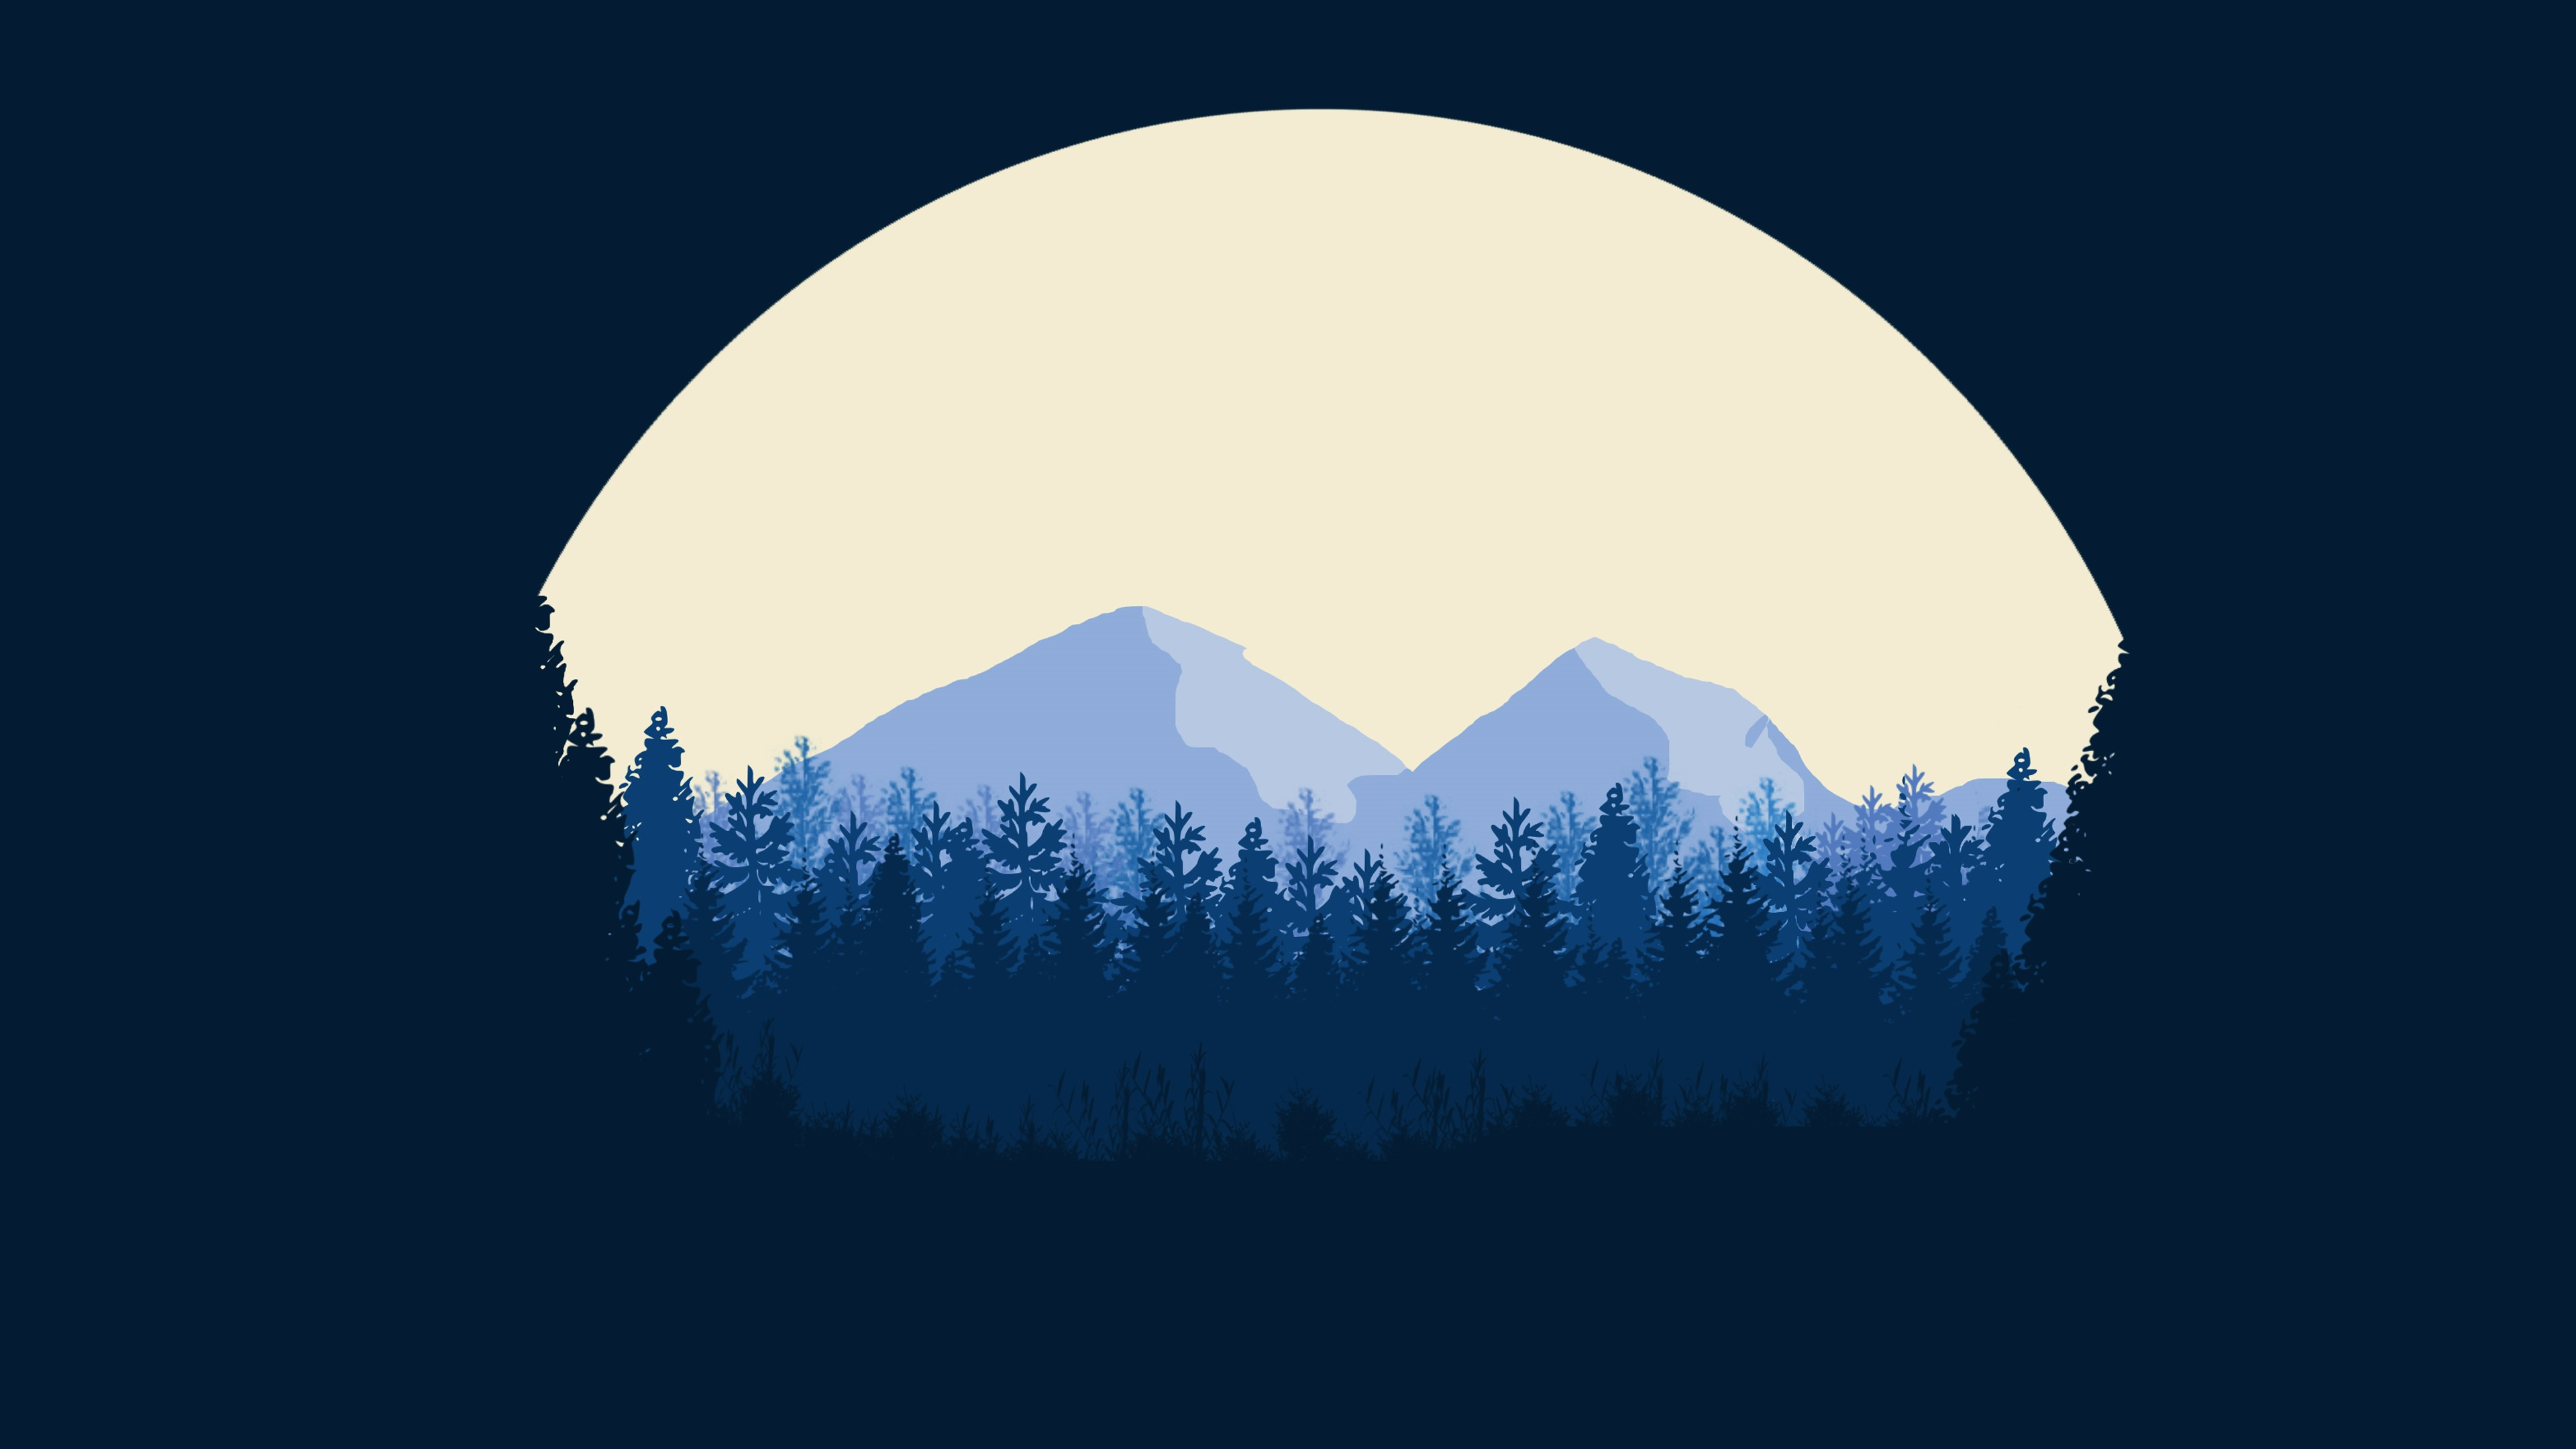 Awesome Animated Wallpapers Moon Backgrounds Free Download Pixelstalk Net